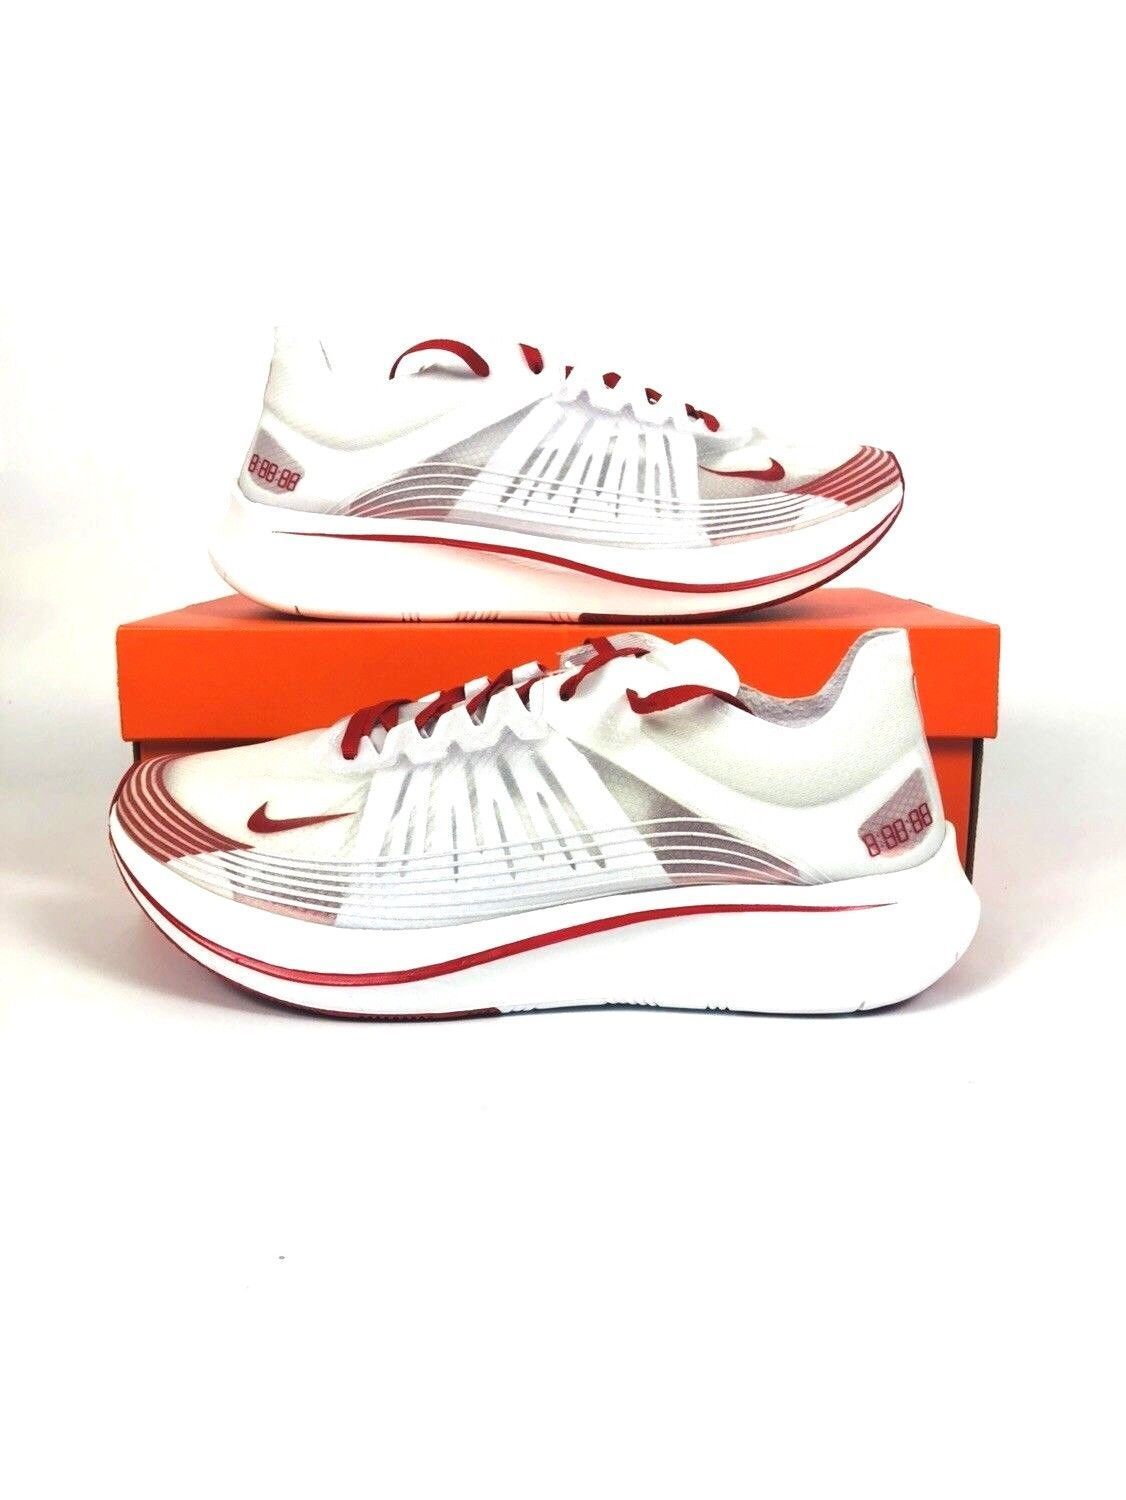 NIKE ZOOM FLY SP RUNNING SHOES TOKYO WHITE  CLEAR UNIVERSITY RED AJ9282-100